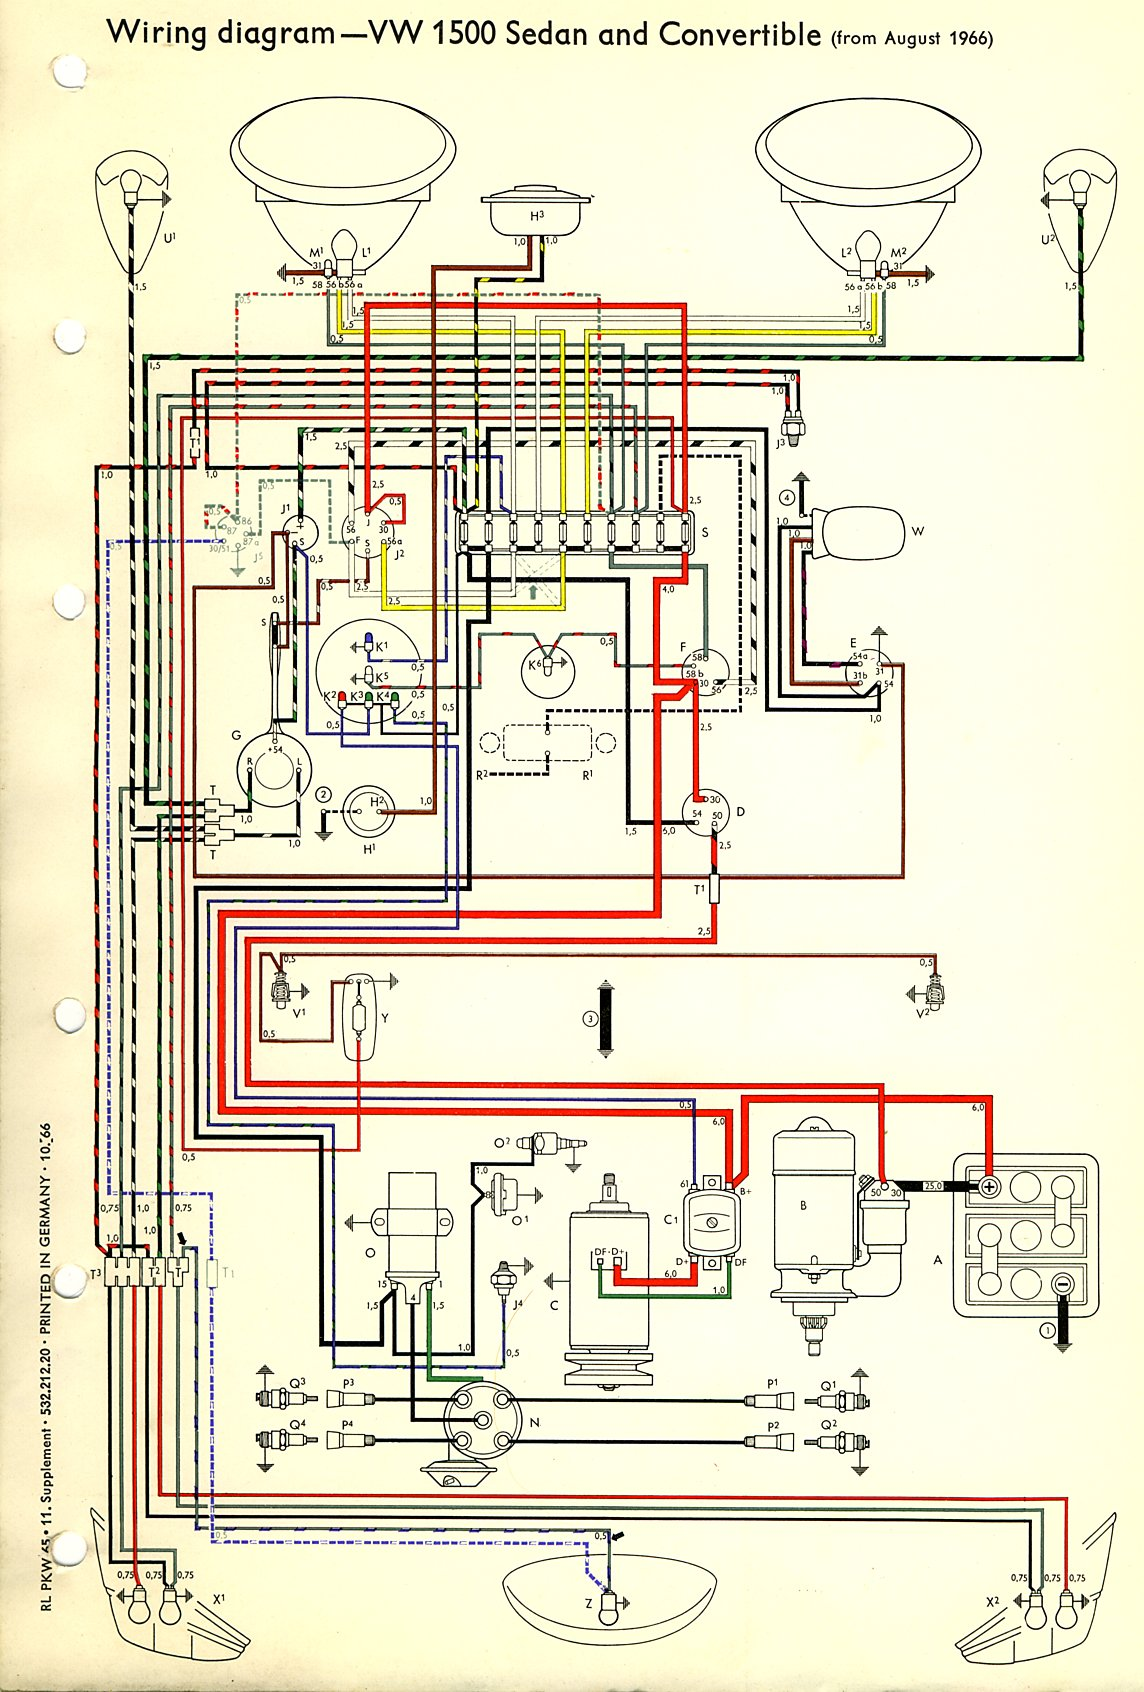 bug_67 1967 beetle wiring diagram thegoldenbug com 1974 vw bug fuse box diagram at n-0.co